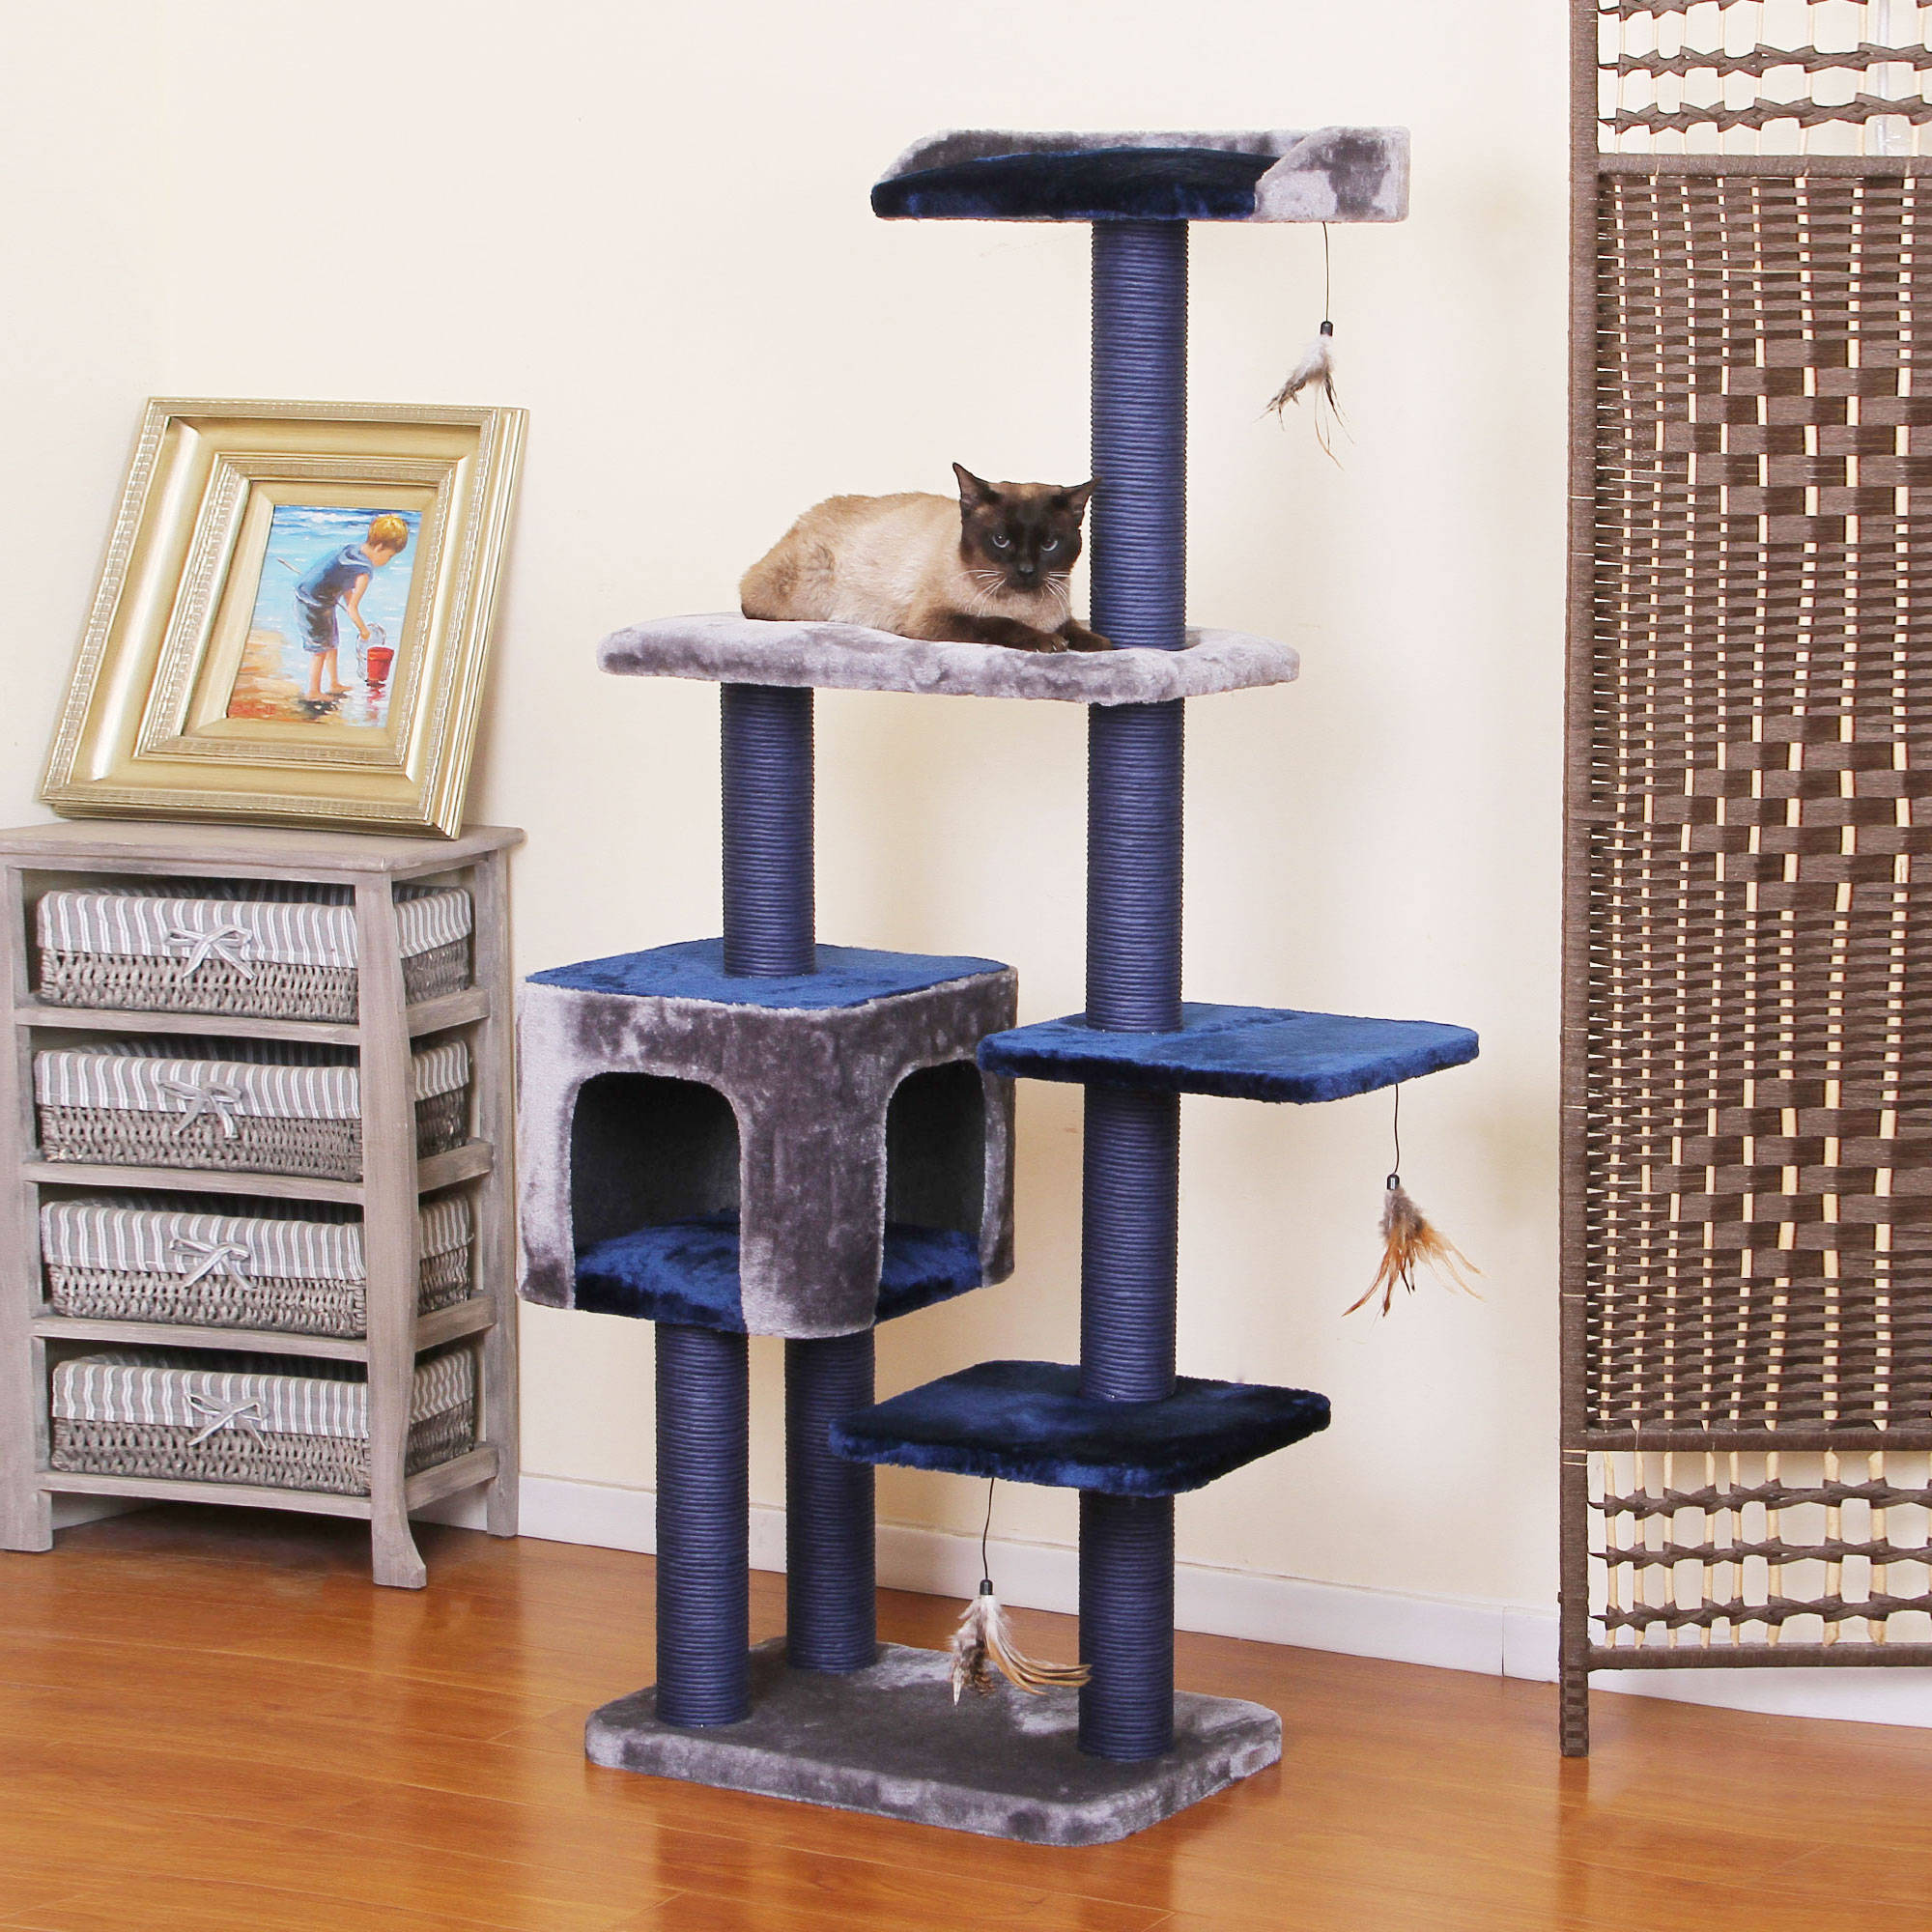 PetPals Group Midnight Molly Elegant Metallic And Ocean Blue Color Cat Tree